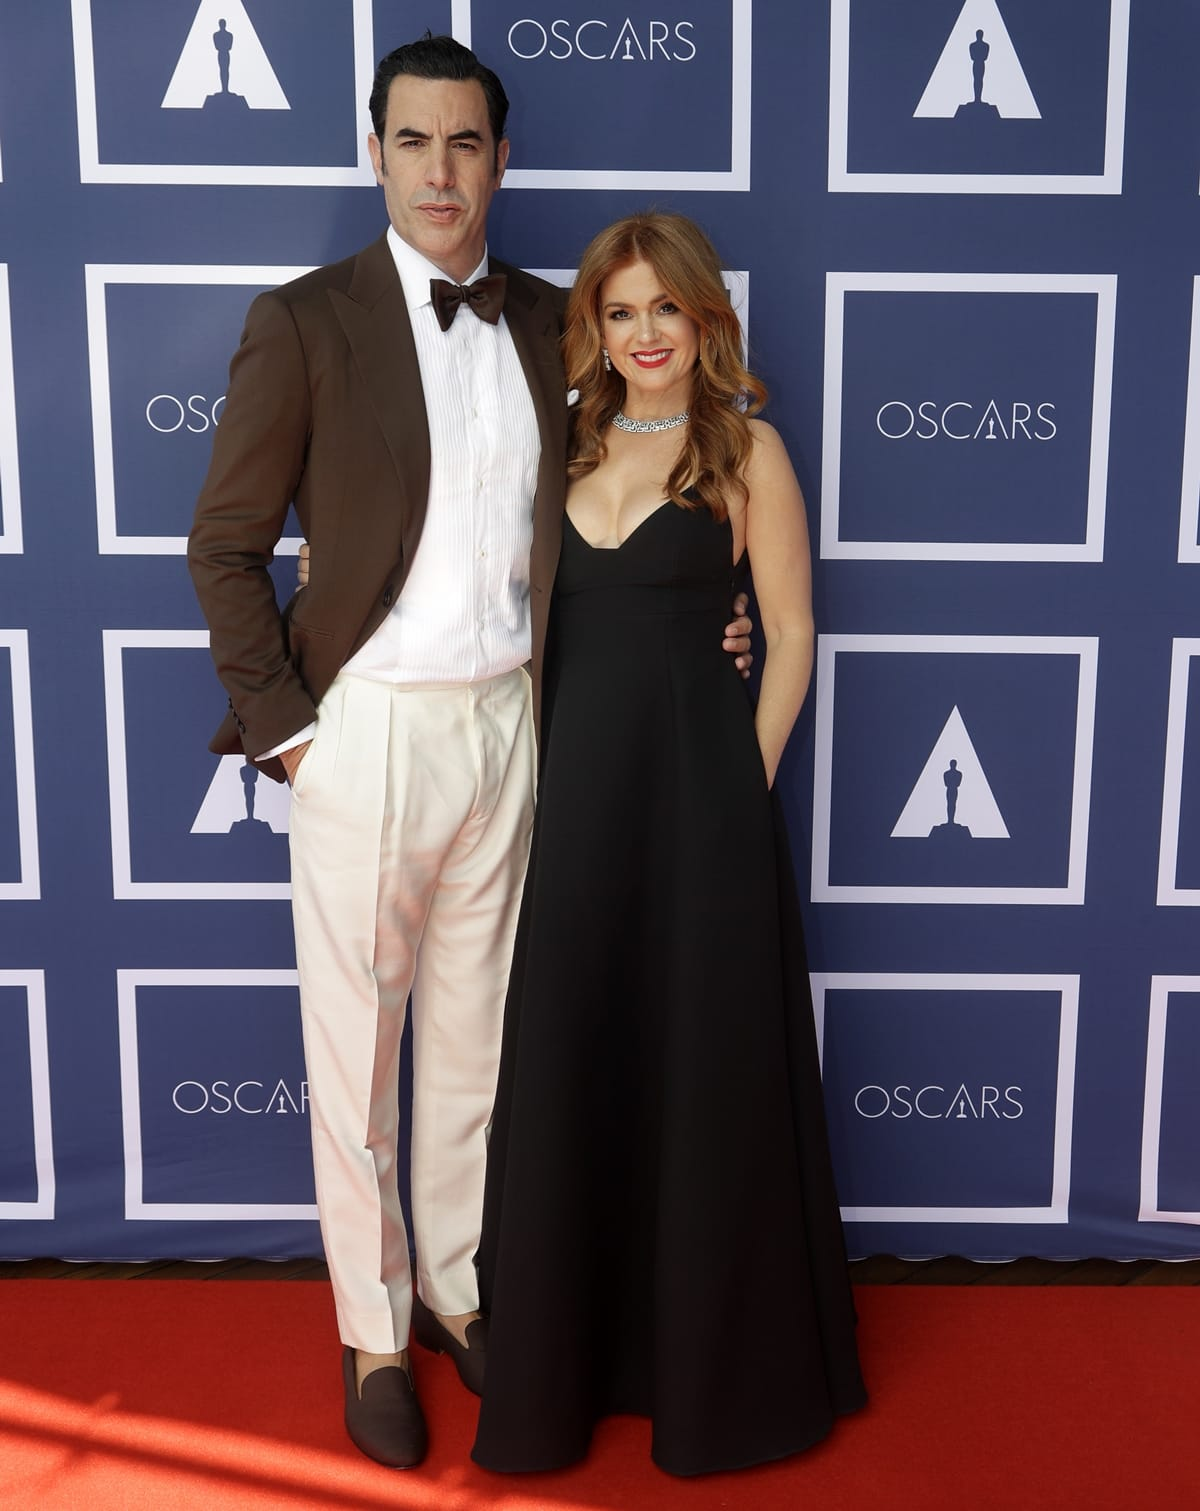 Isla Fisher in a black low-cut black Dior gown and her husband Sacha Baron Cohen